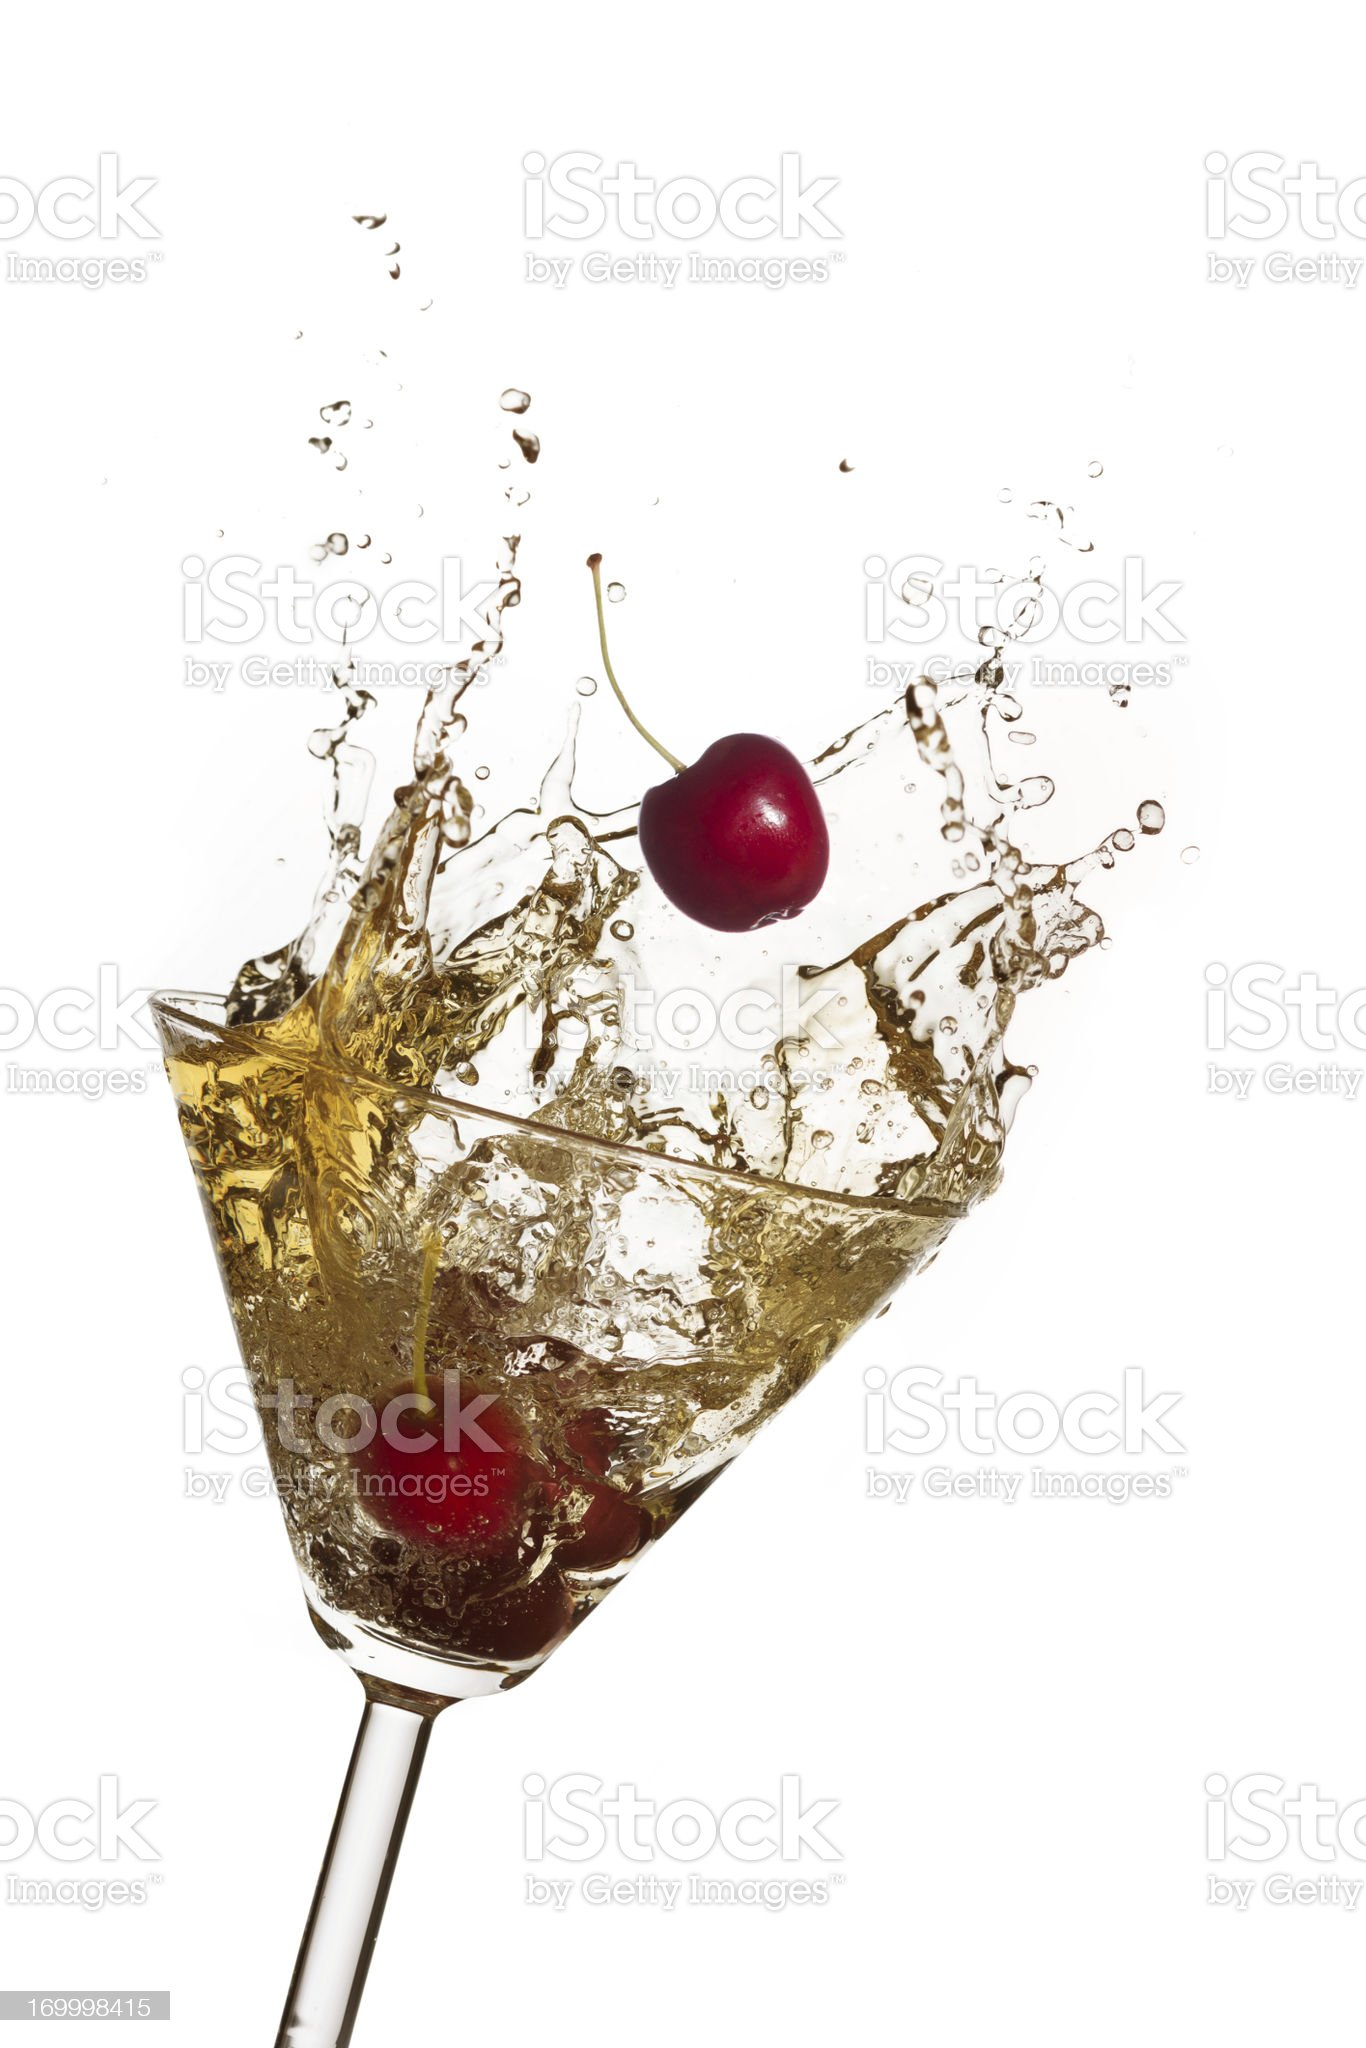 Splashing cocktail royalty-free stock photo